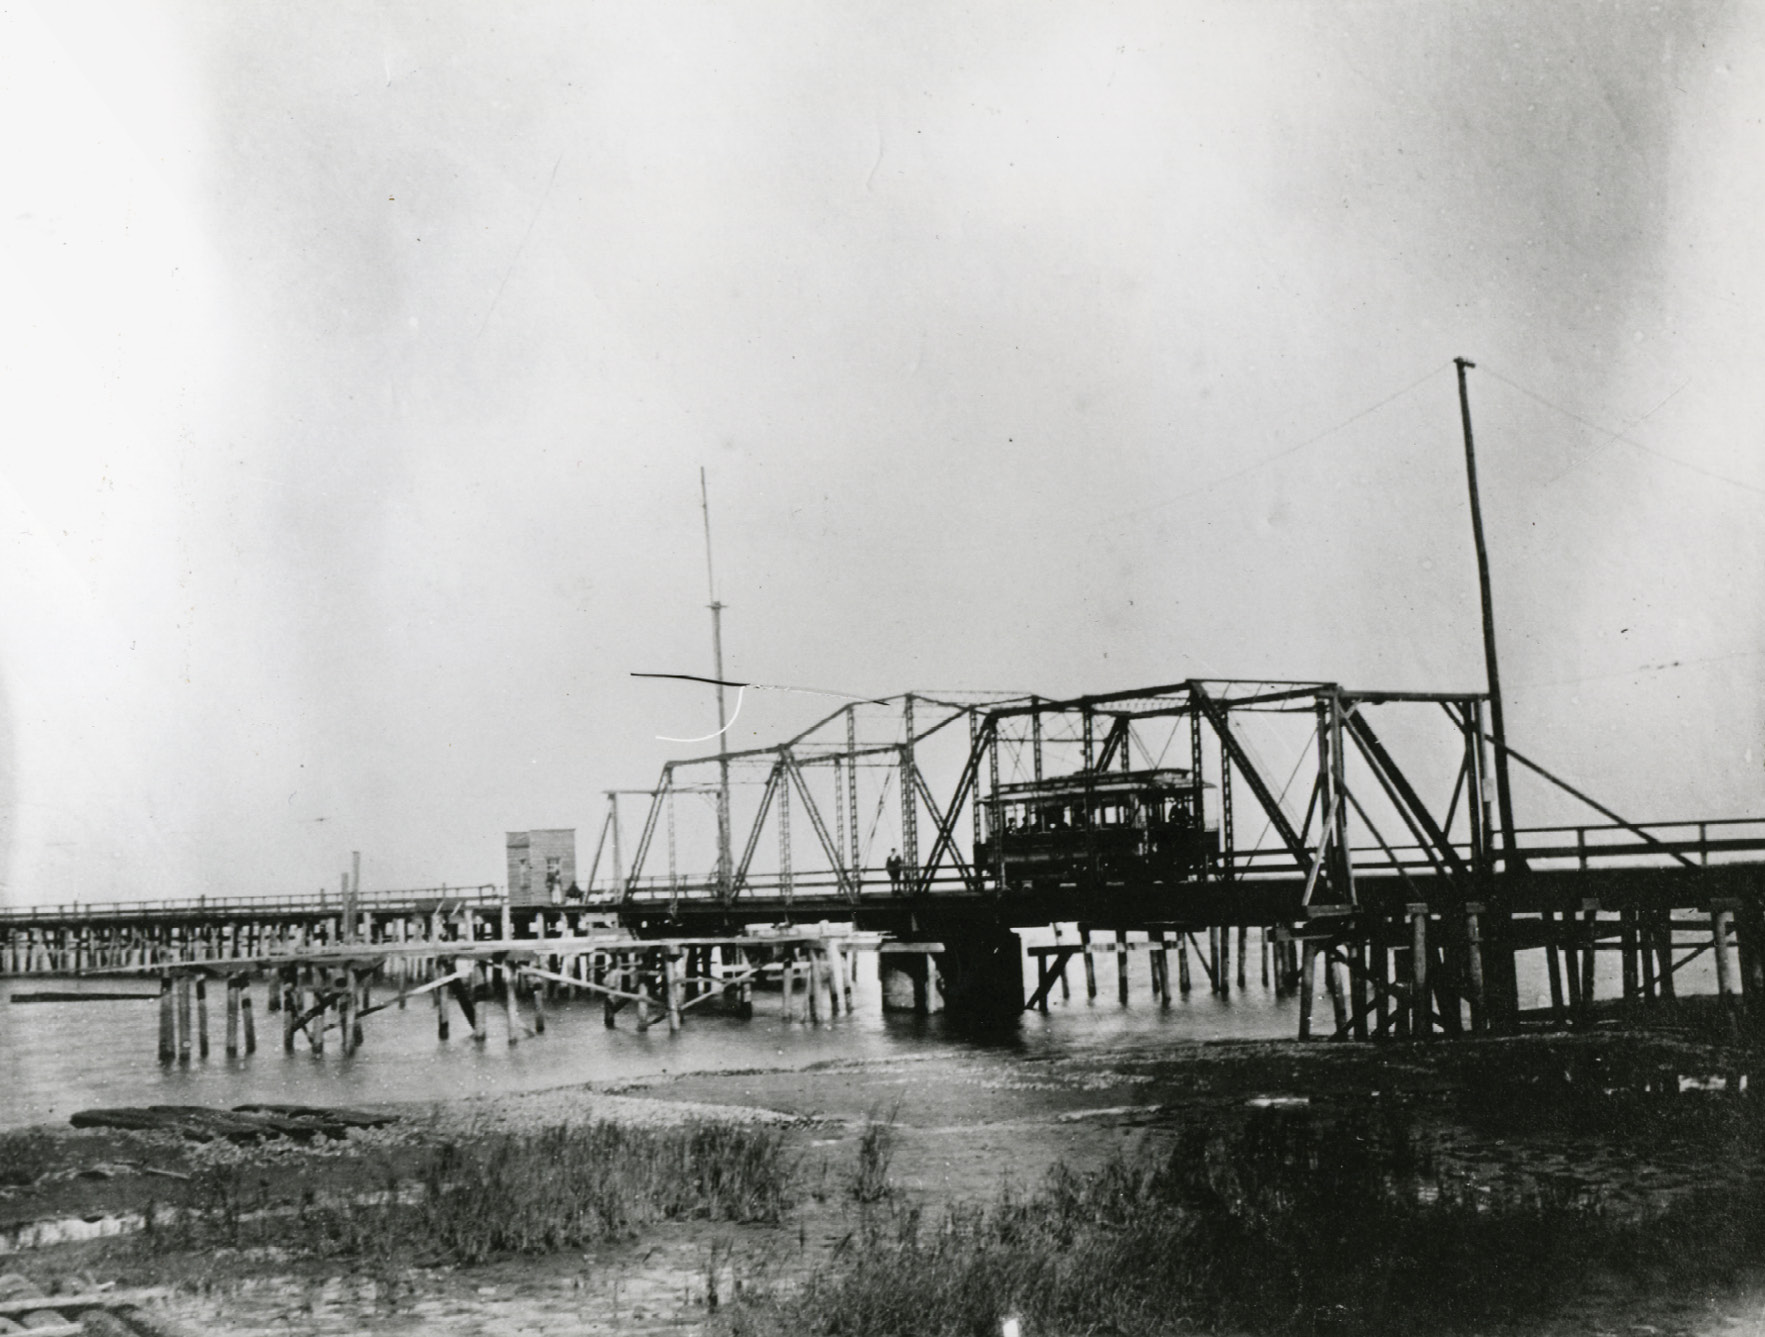 The Cove Inlet trolley bridge between the Old Village in Mount Pleasant and Station 9 on the island